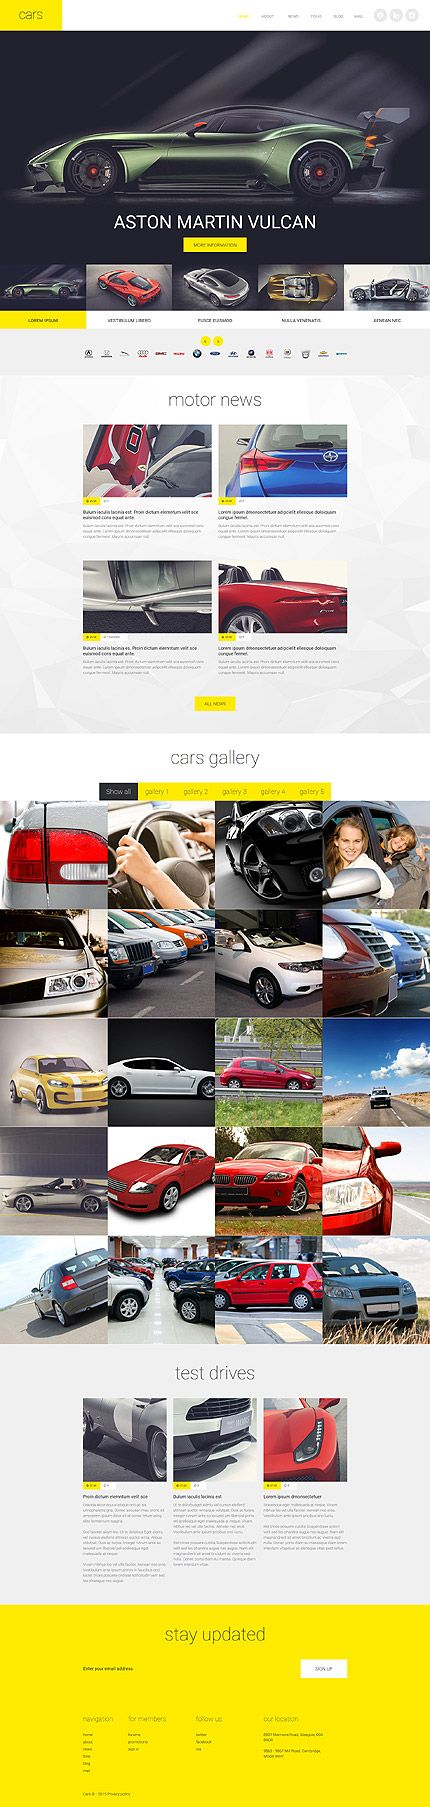 All About Cars Portal #Joomla #template. #themes #business #responsive #Joomlathemes